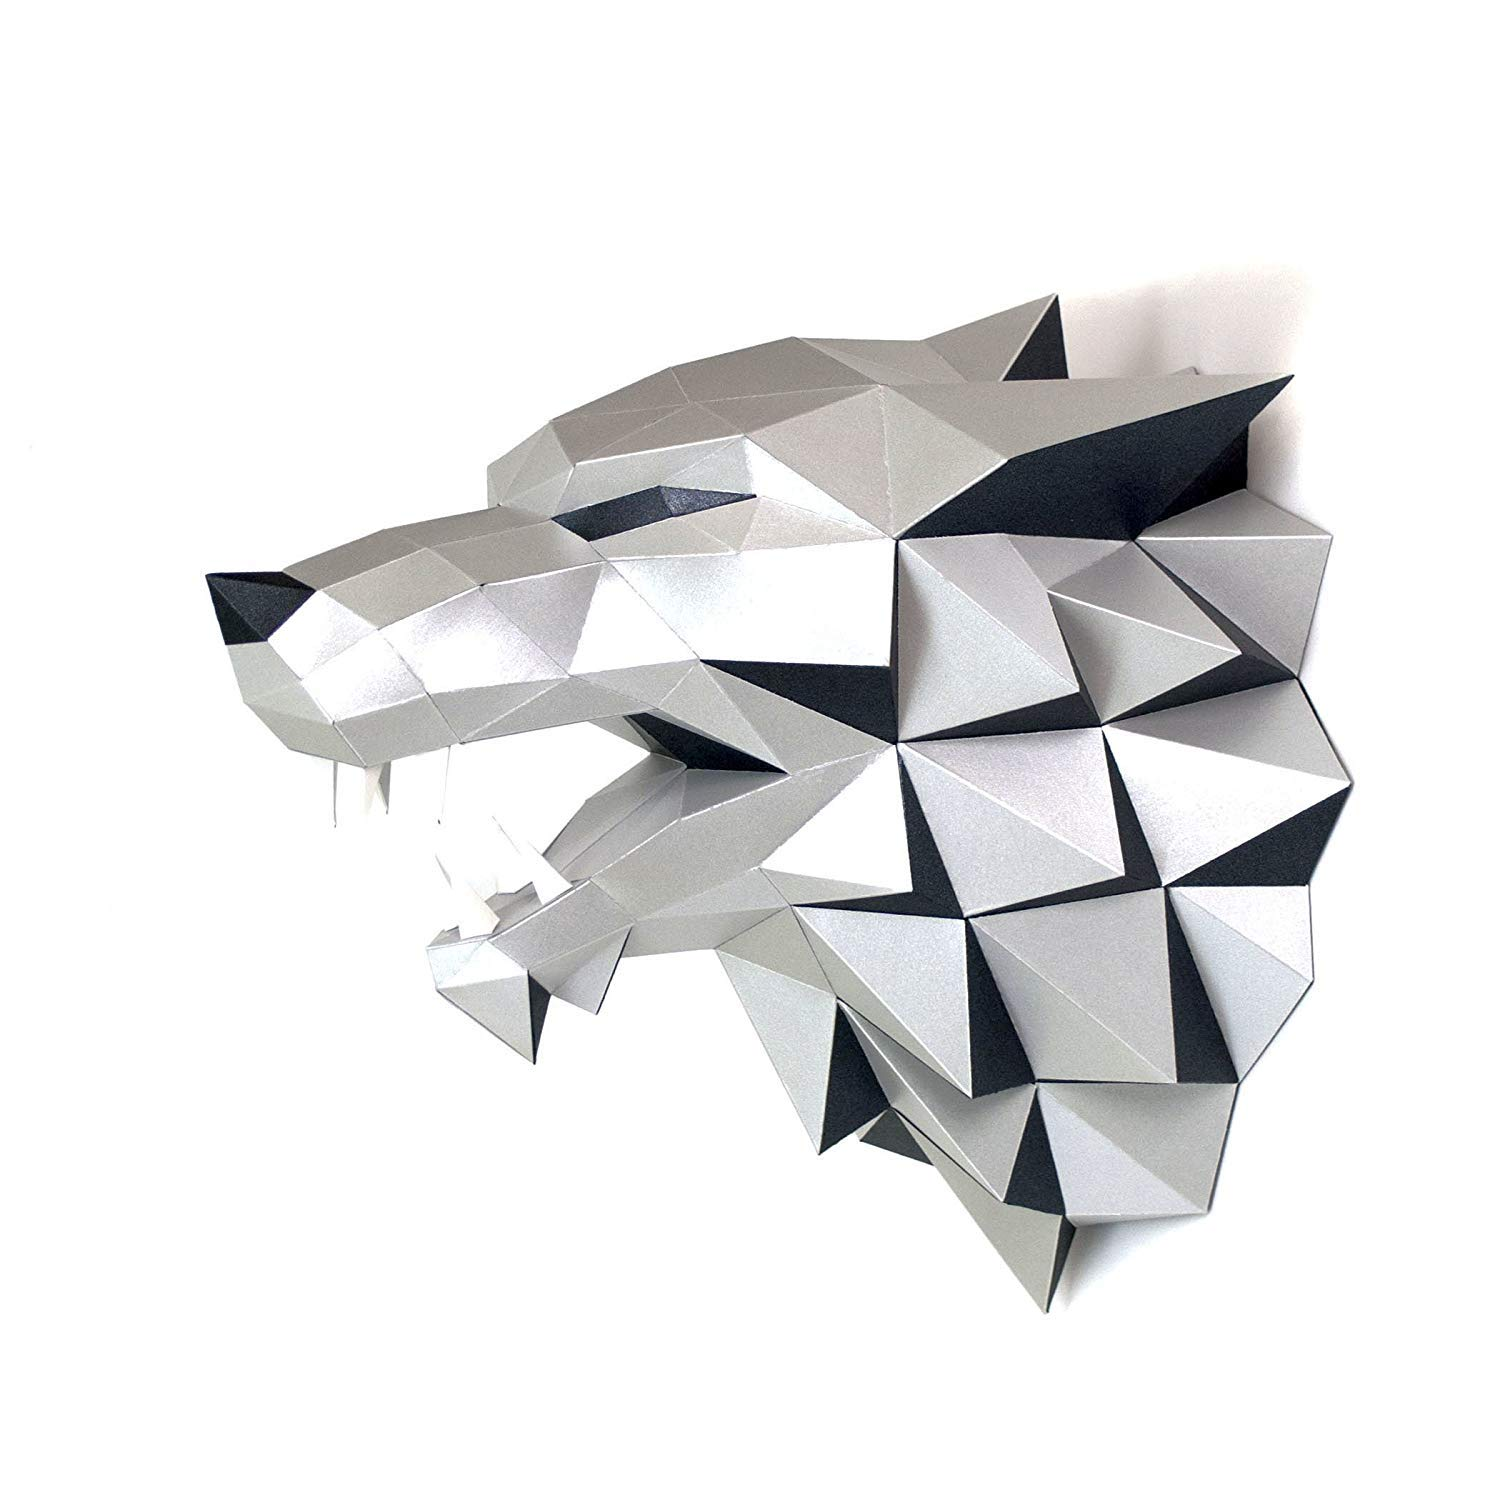 Wolf Head Paper Trophy Complete Craft kit GOT House Stark Direwolf DIY 3D Building Puzzle Adults Low Poly Paper Animal Building Set Game Thrones